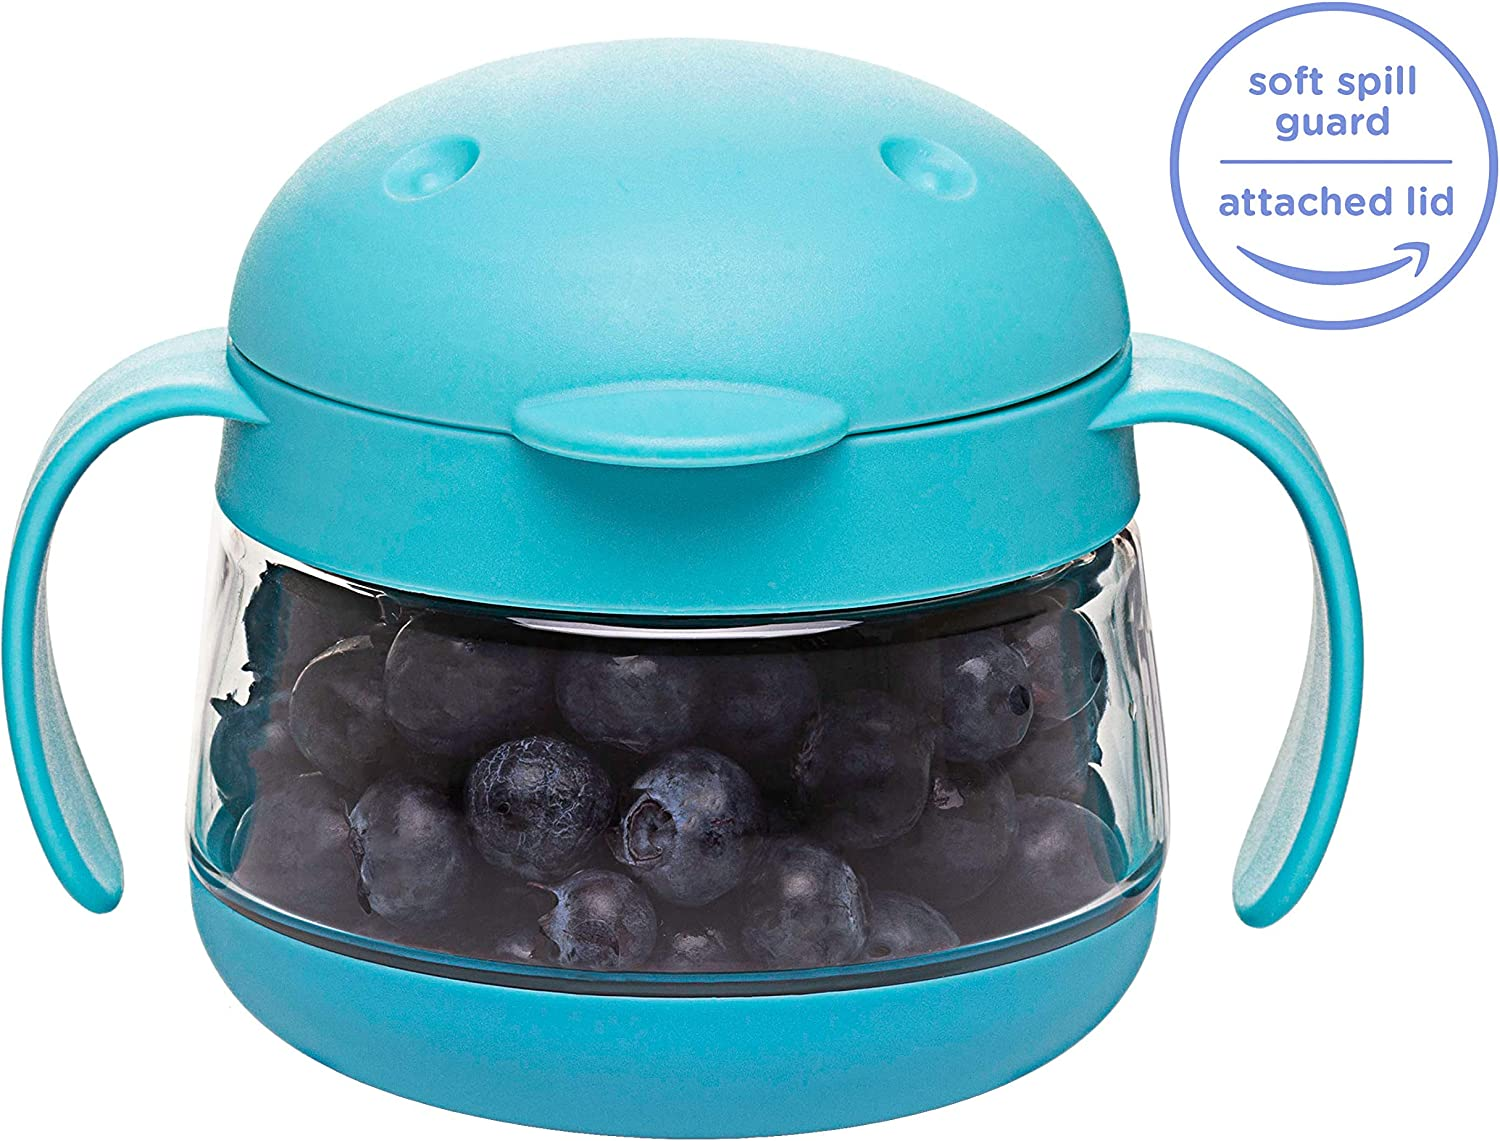 Spill Proof Blue Stay Put Lid Toddler Snack Container with Twist-On Ubbi Tweat Snack Catcher 10301